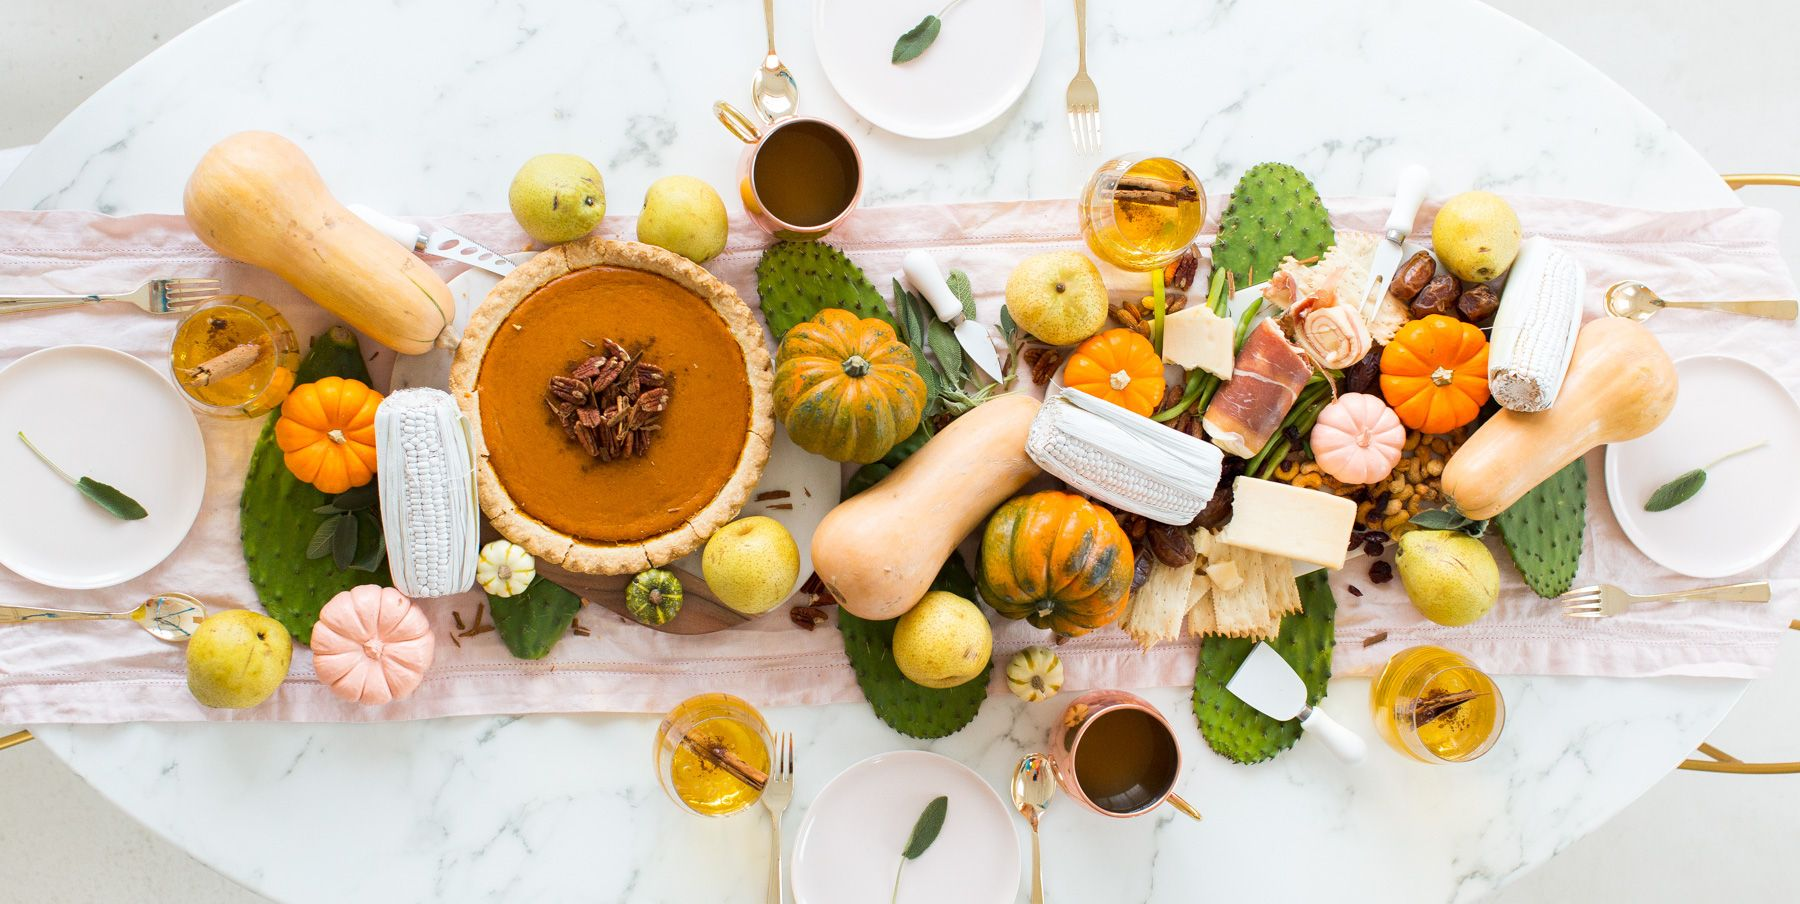 15 Super Creative Ways To Decorate Your Table For Fall